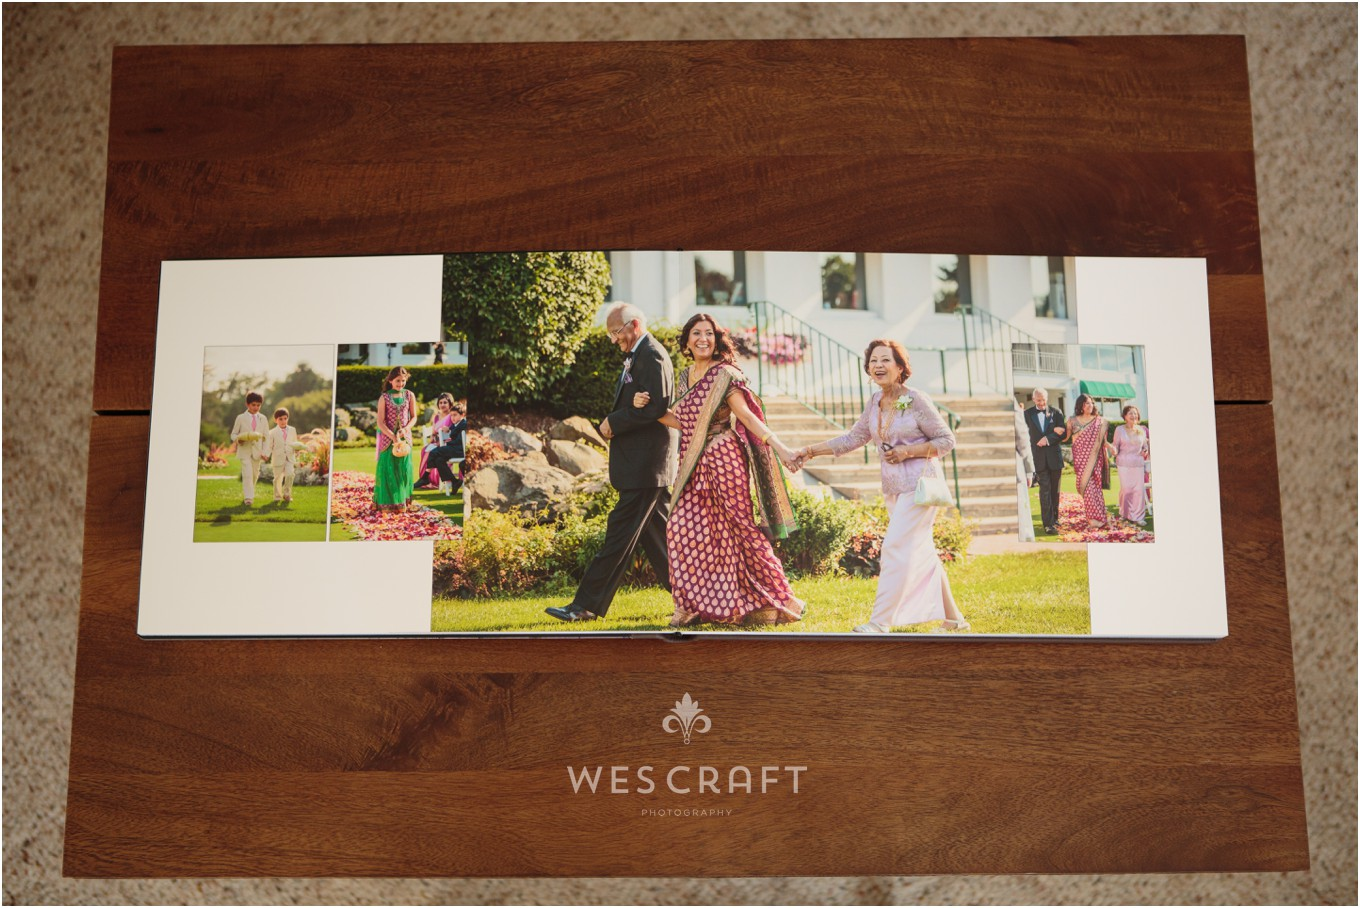 We love this album spread from the wedding ceremony.  Our Artisan 16x12 album comes with 25 spreads!